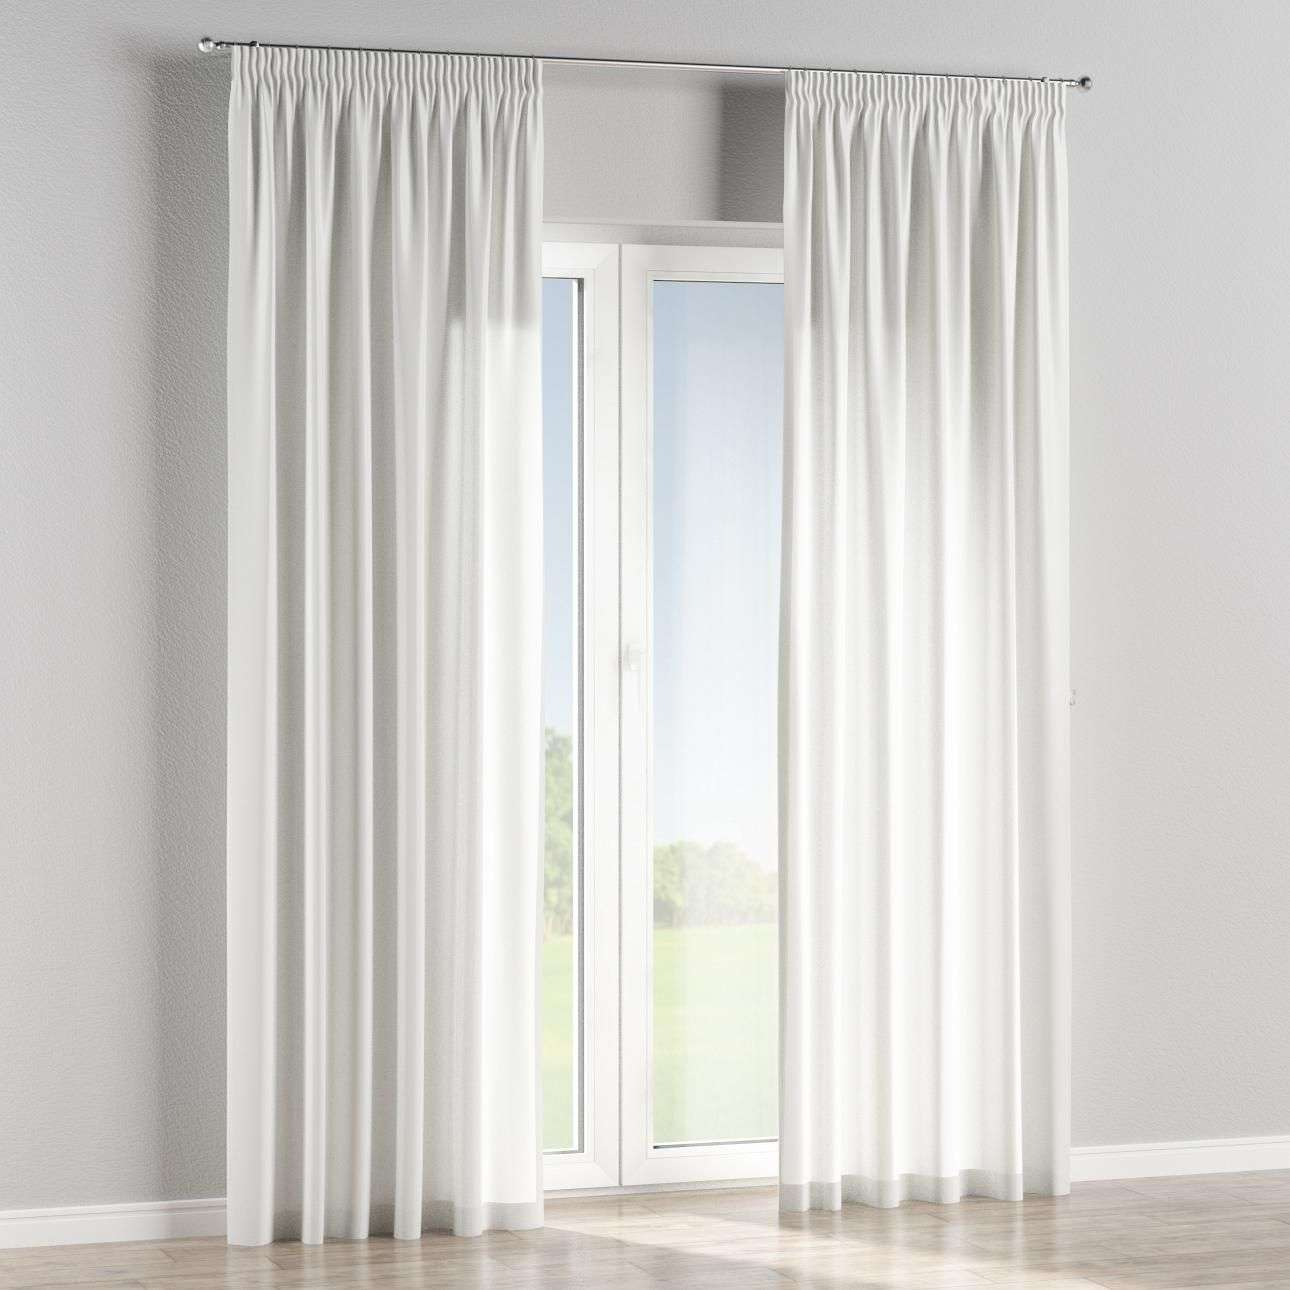 Pencil pleat lined curtains in collection Norge, fabric: 150-17